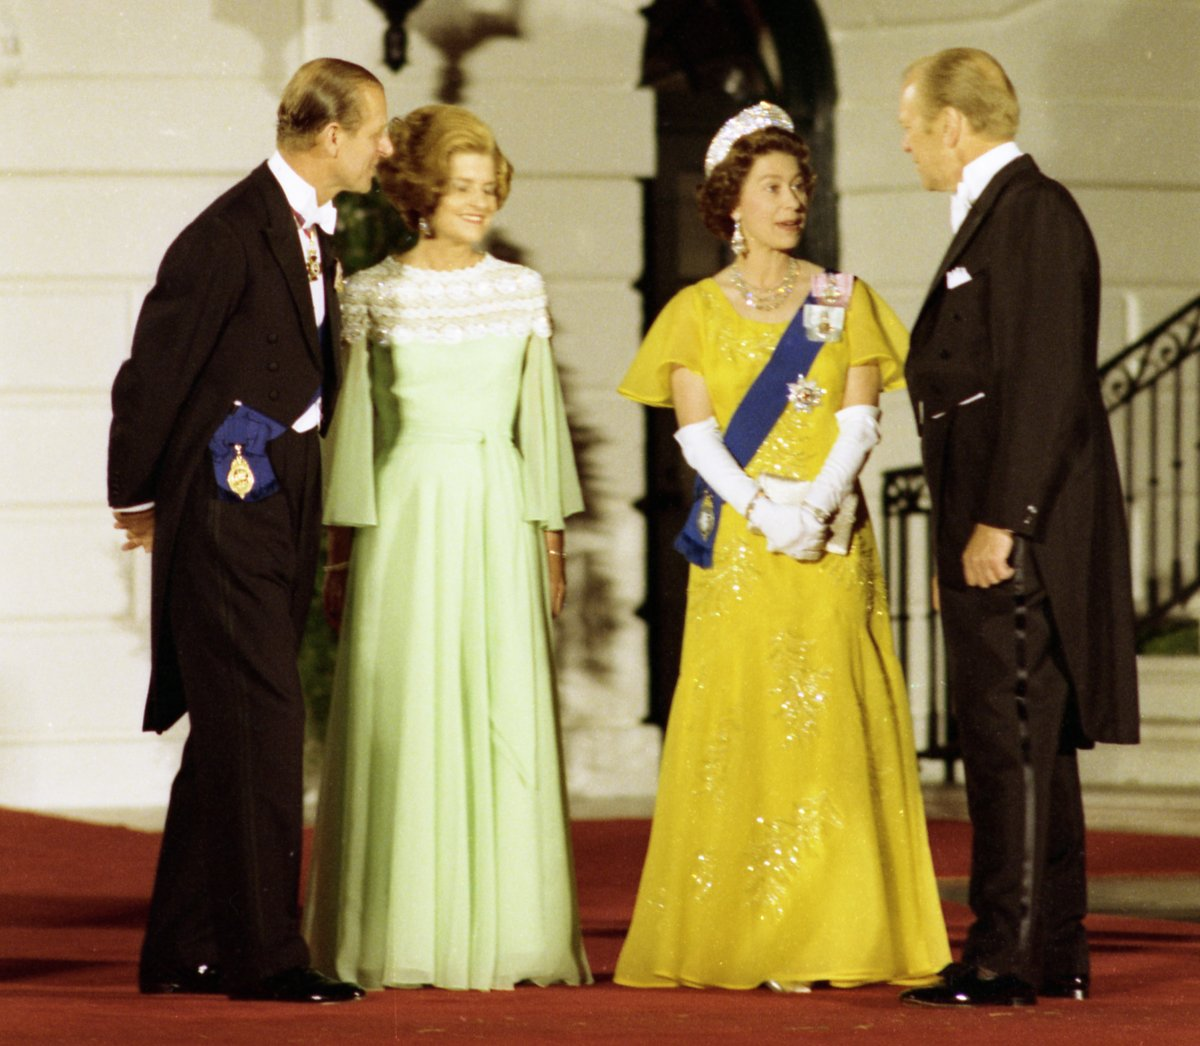 President Gerald R. Ford and First Lady Betty Ford Standing With Queen Elizabeth II and Prince Philip of Great Britain on the South Portico of the White House Prior to a State Dinner Honoring Her Majesty and Prince Philip